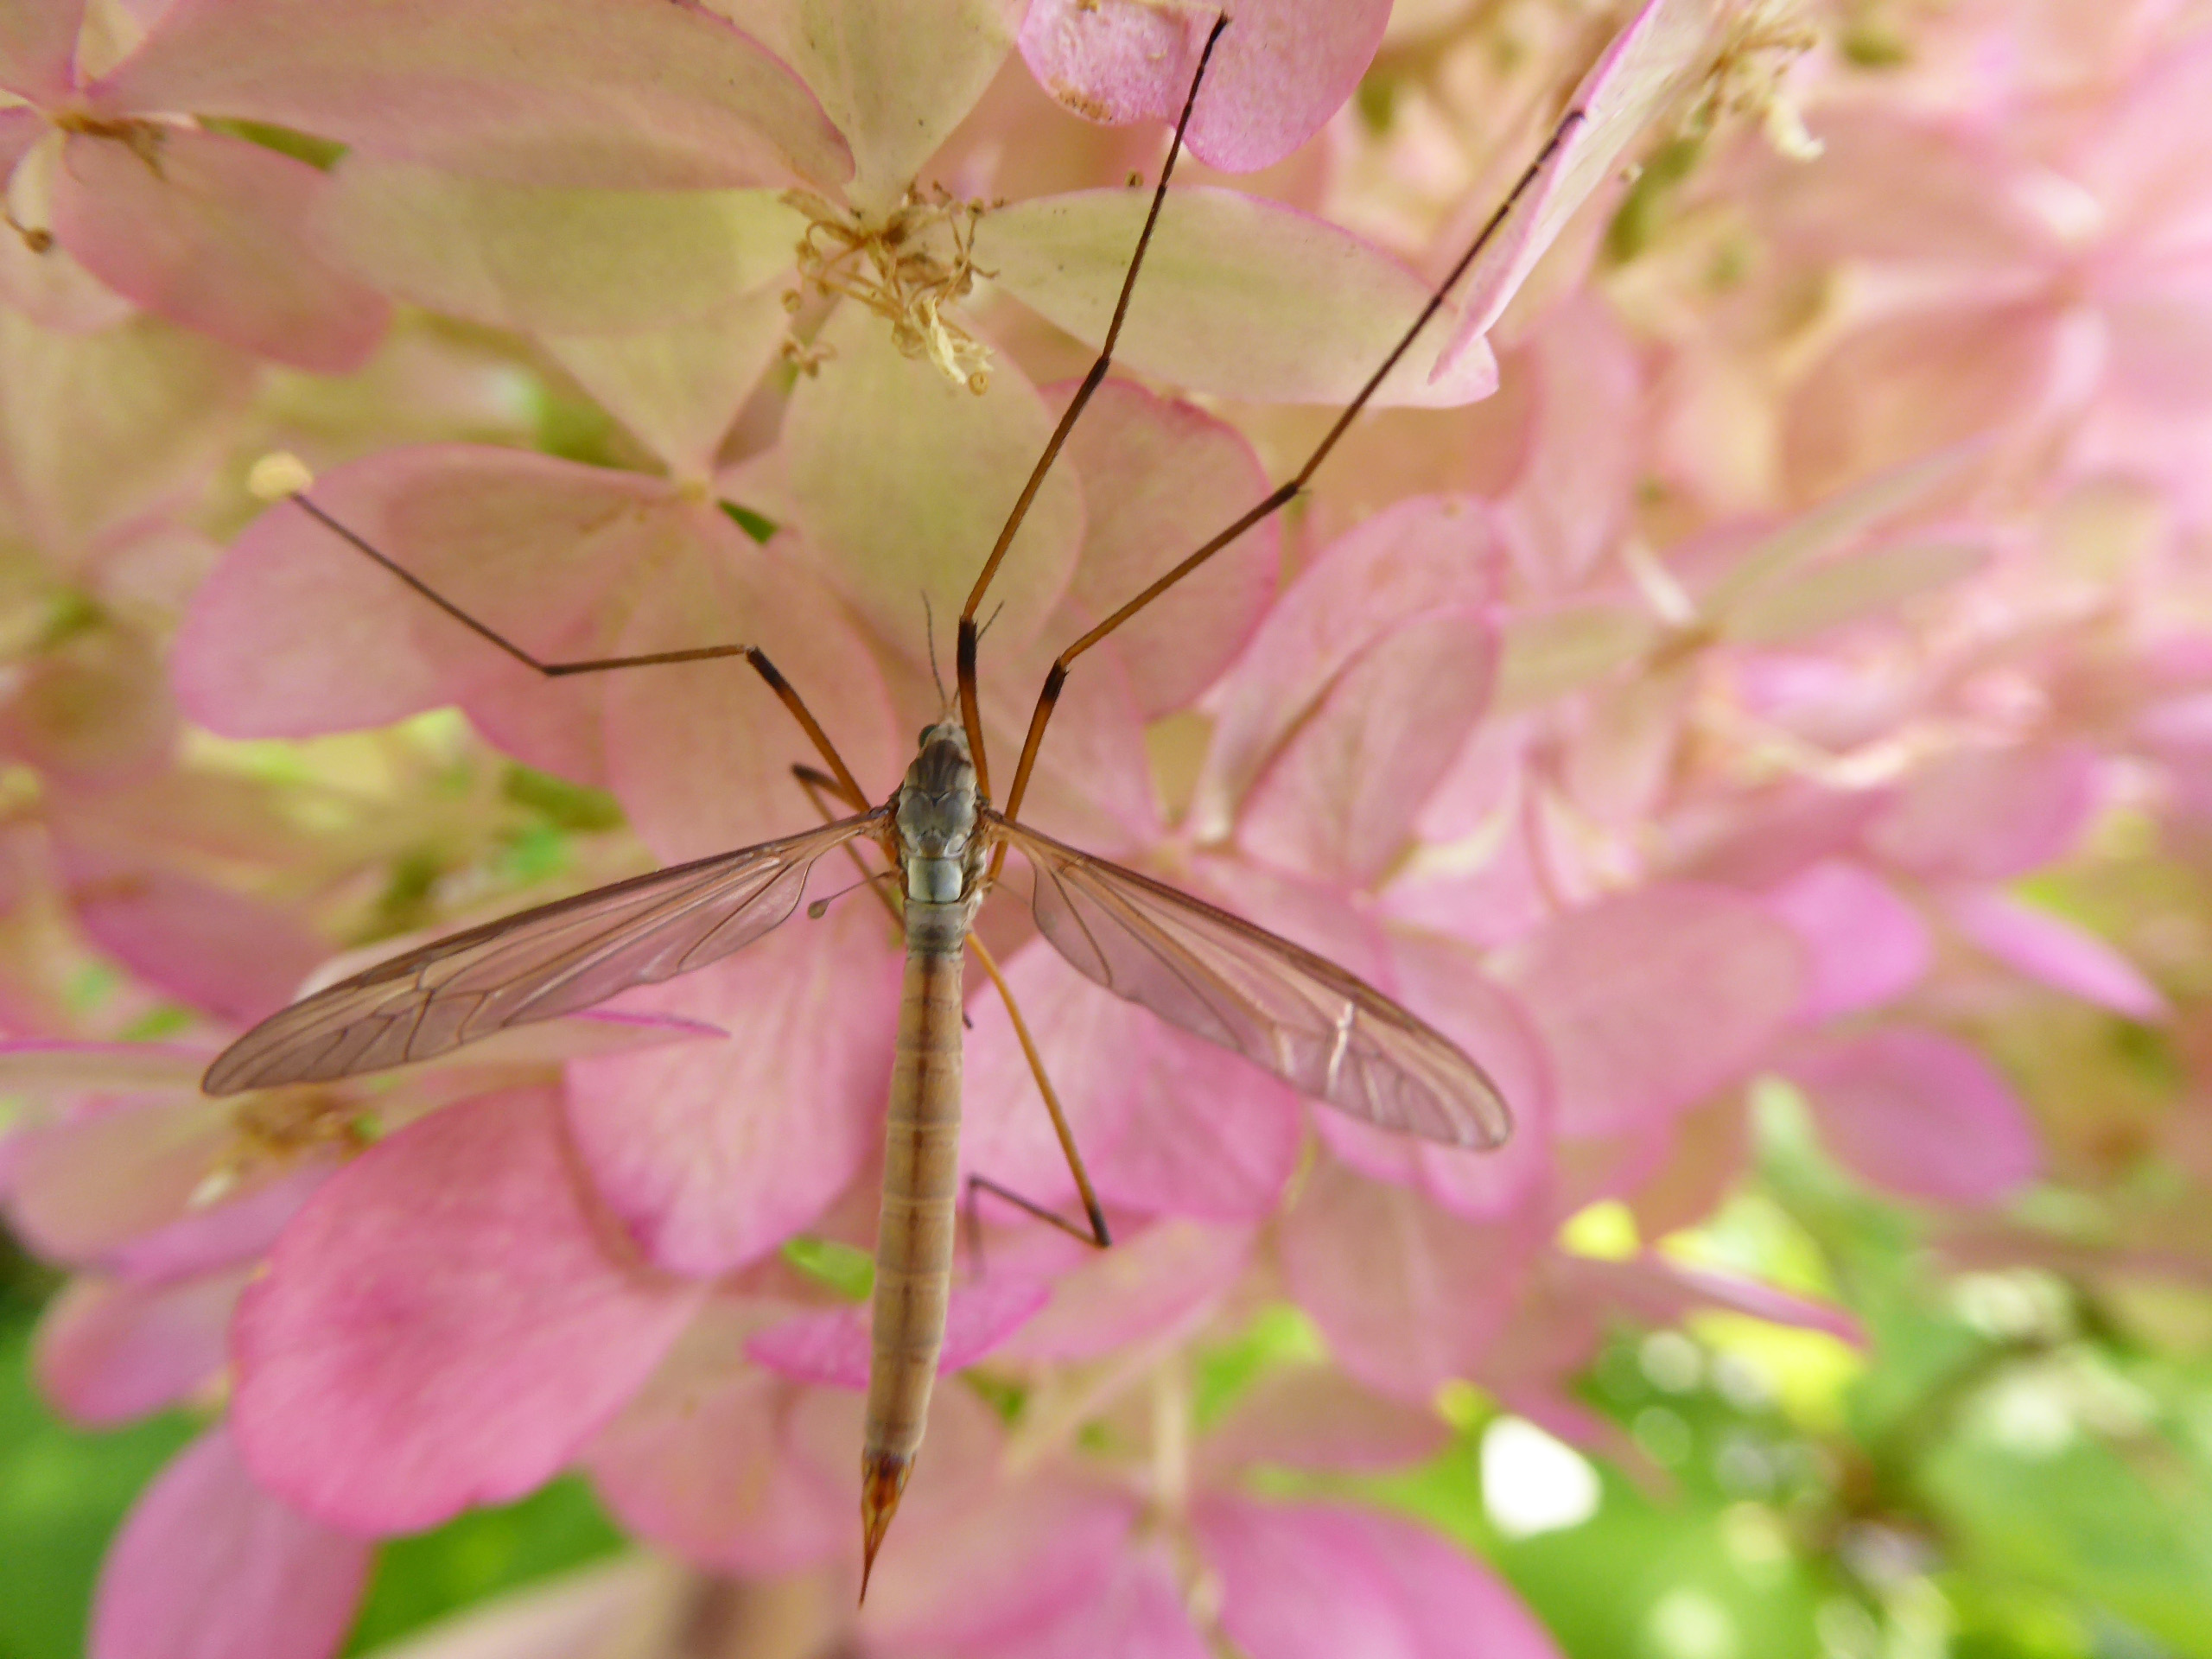 Daddy Long-Legs spider on Hydrangea